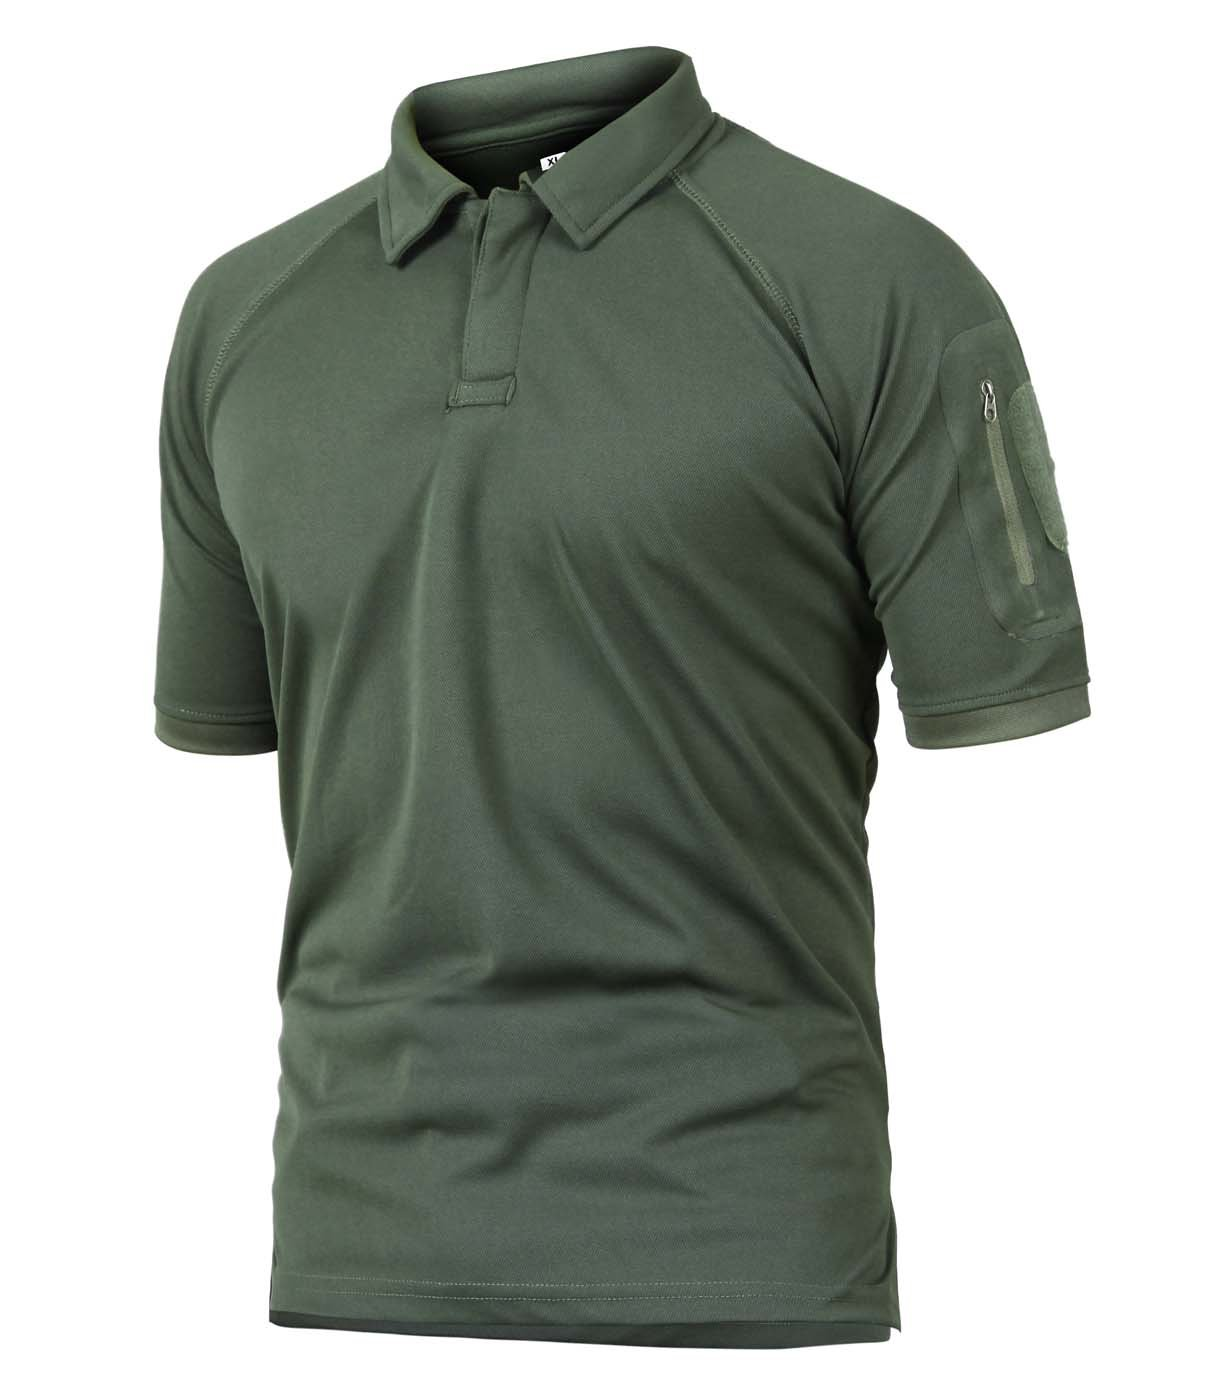 CRYSULLY Men Summer Pullover Tactical T-Shirts for Men Short Sleeve Military Polo Shirt Outdoor Combat Shirt Army Green